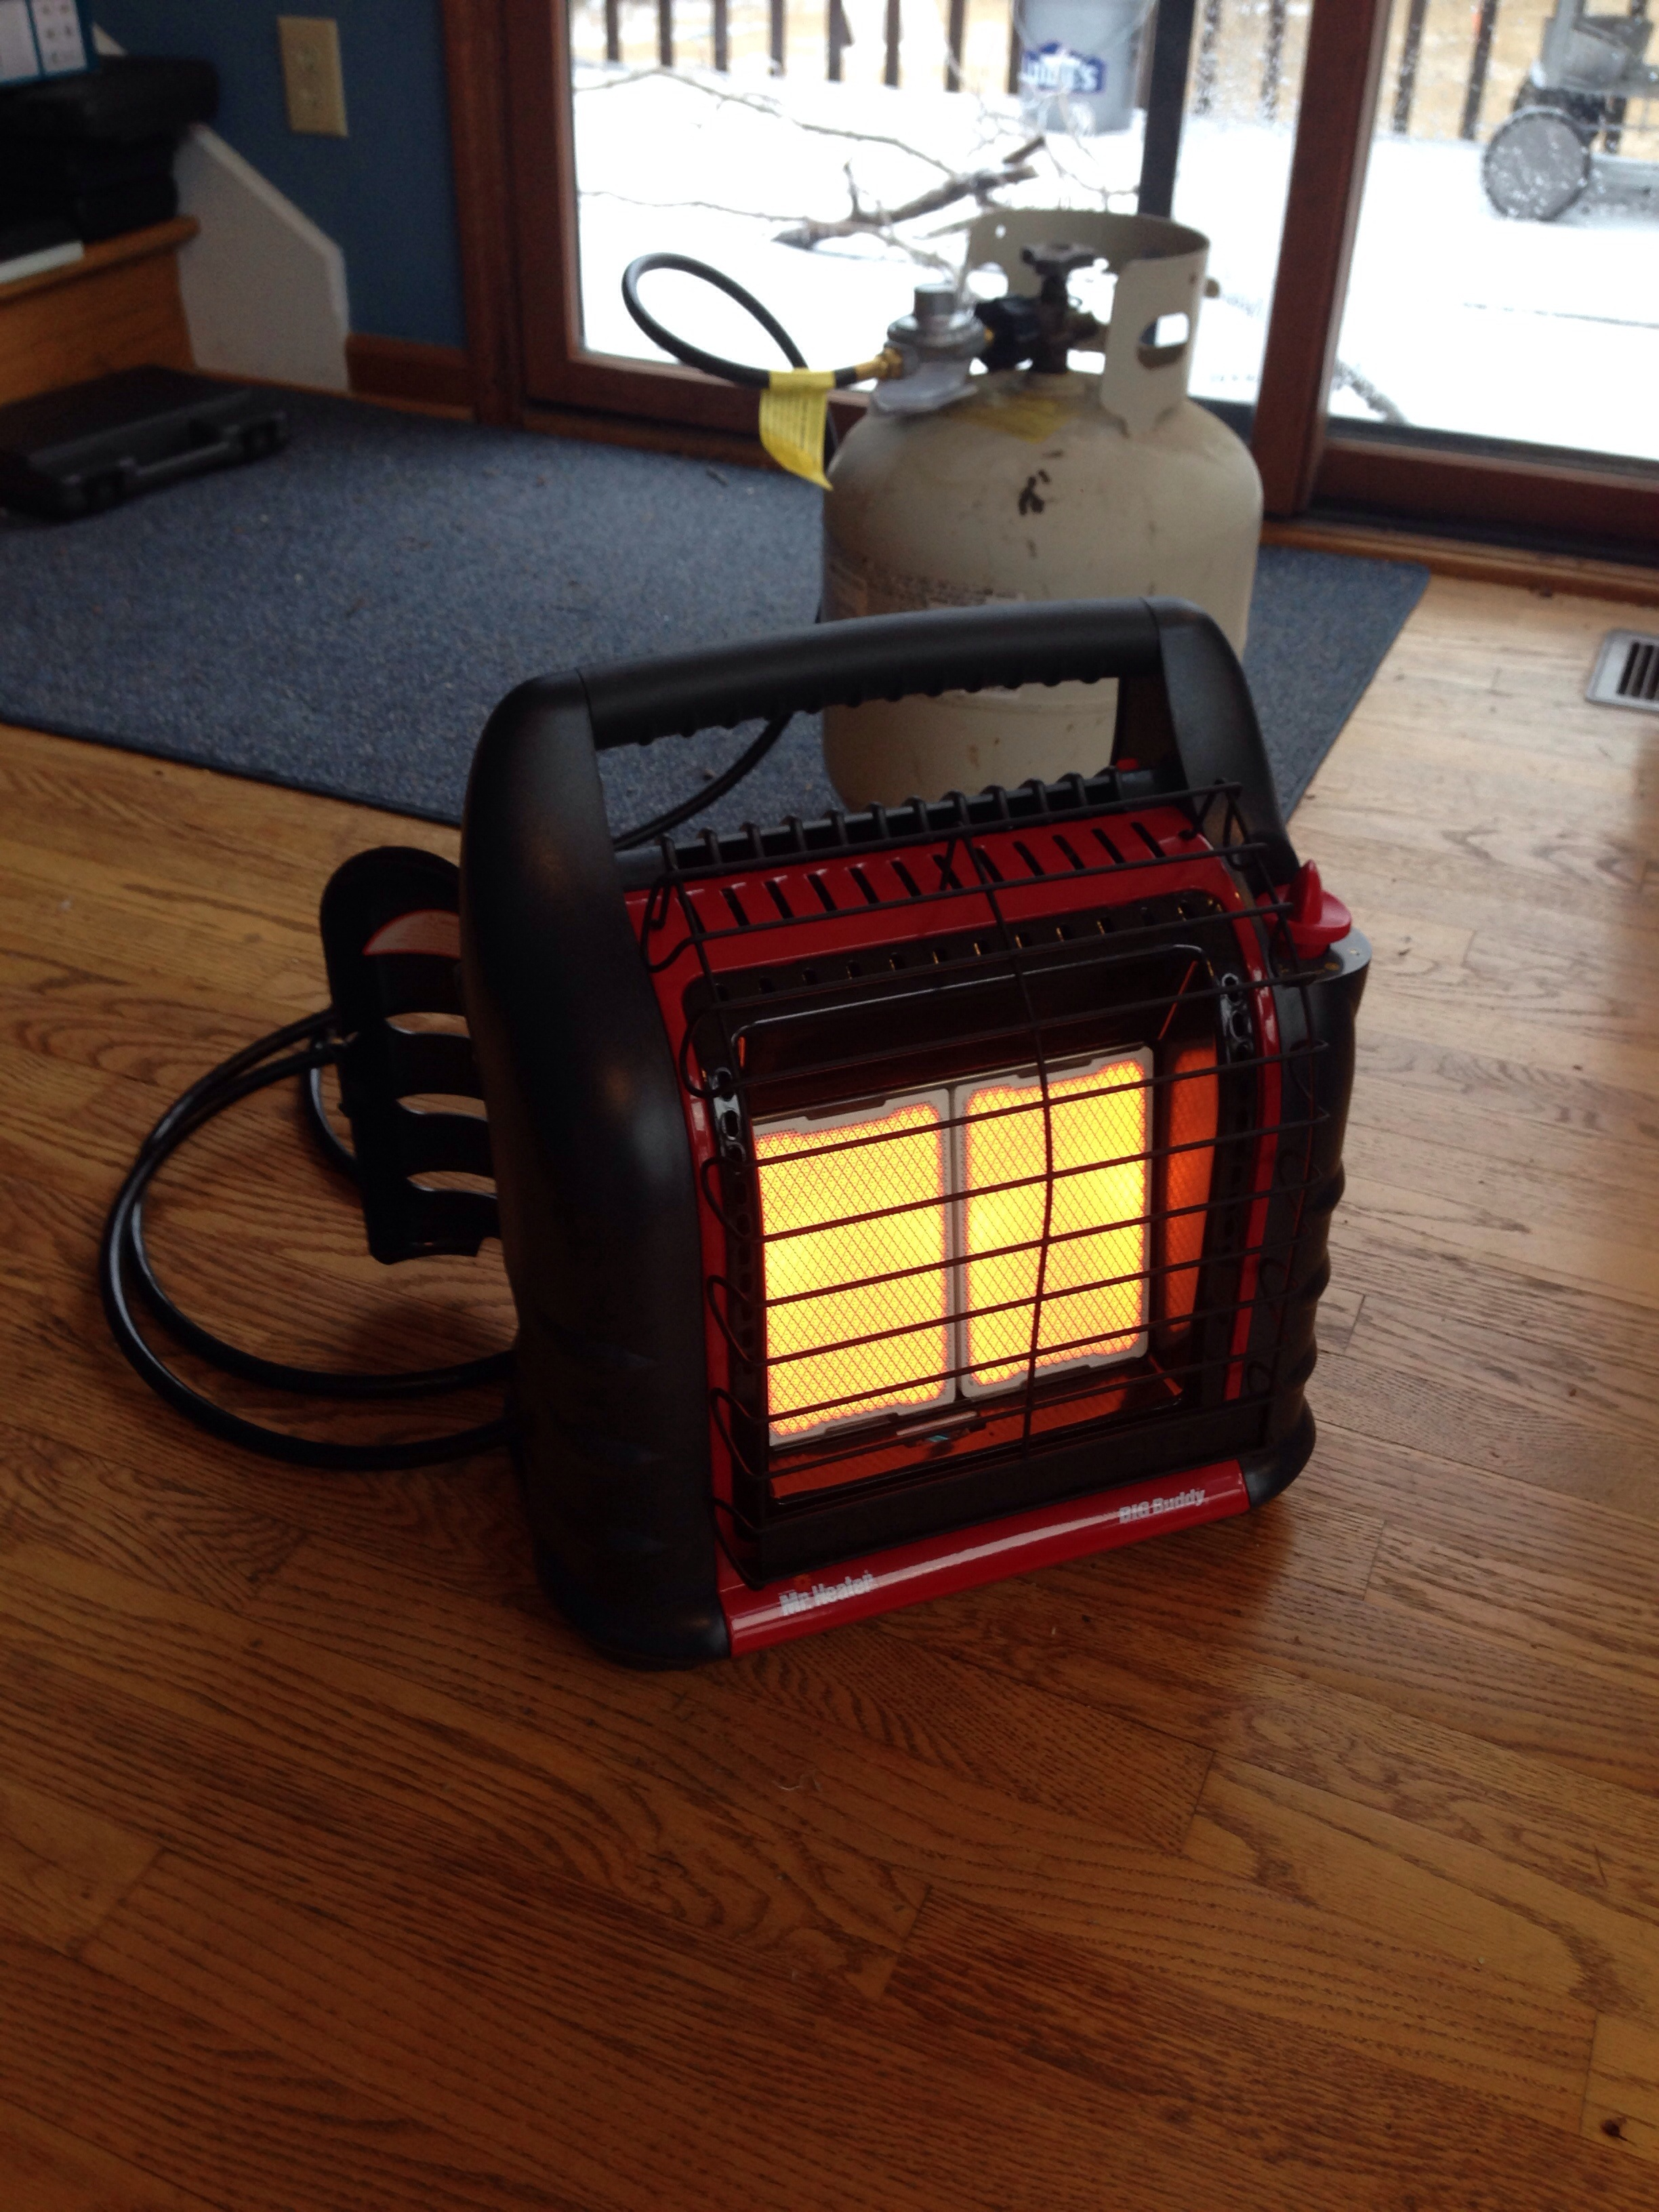 My Propane Heater